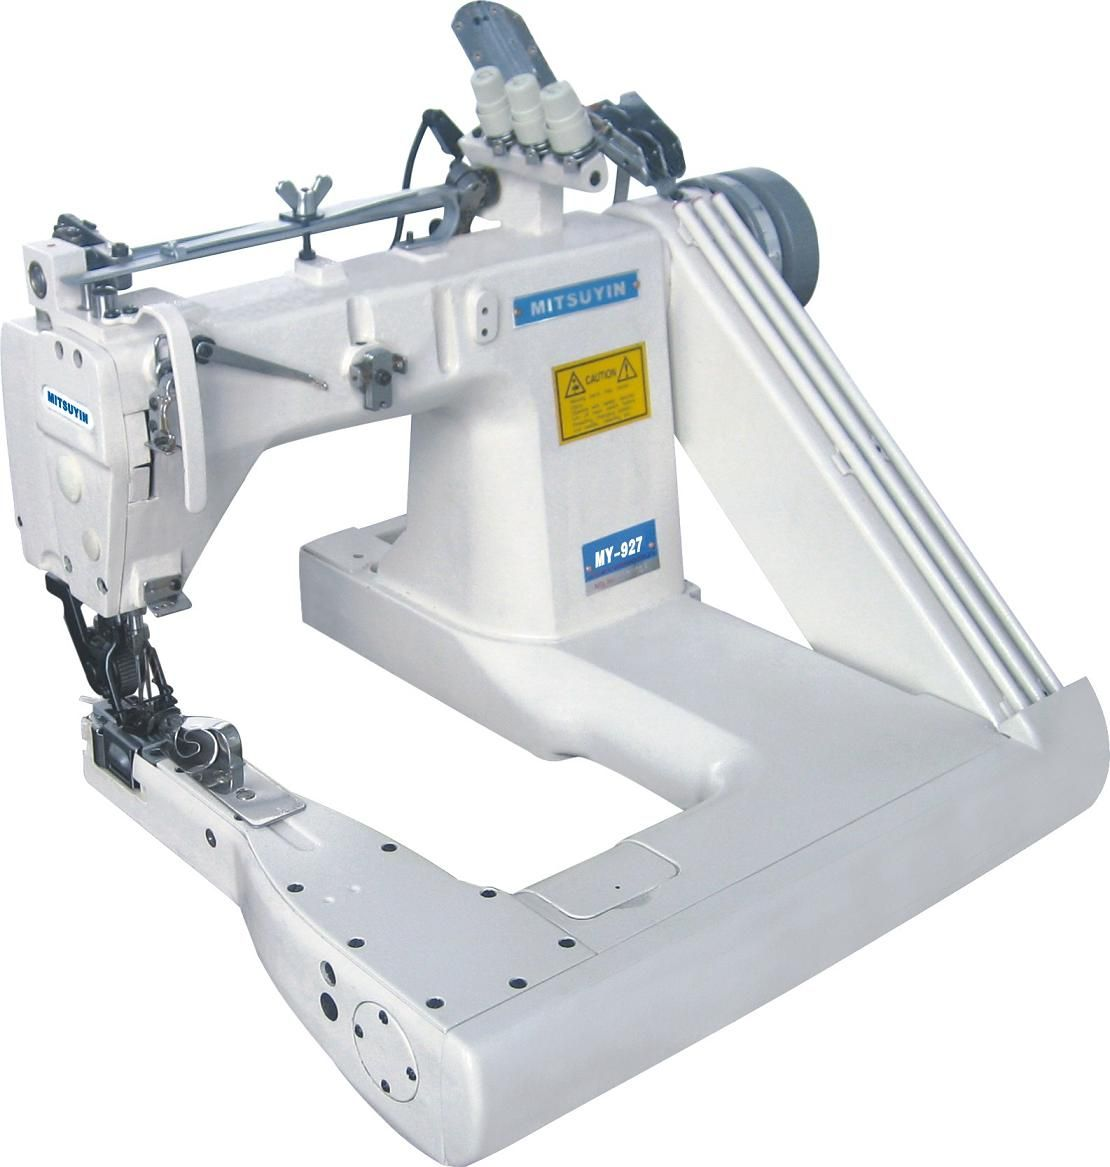 Feed Of The Arm Sewing Machine For Denim And Shirts 2 And 3 Needle Sewing Stitching Machine